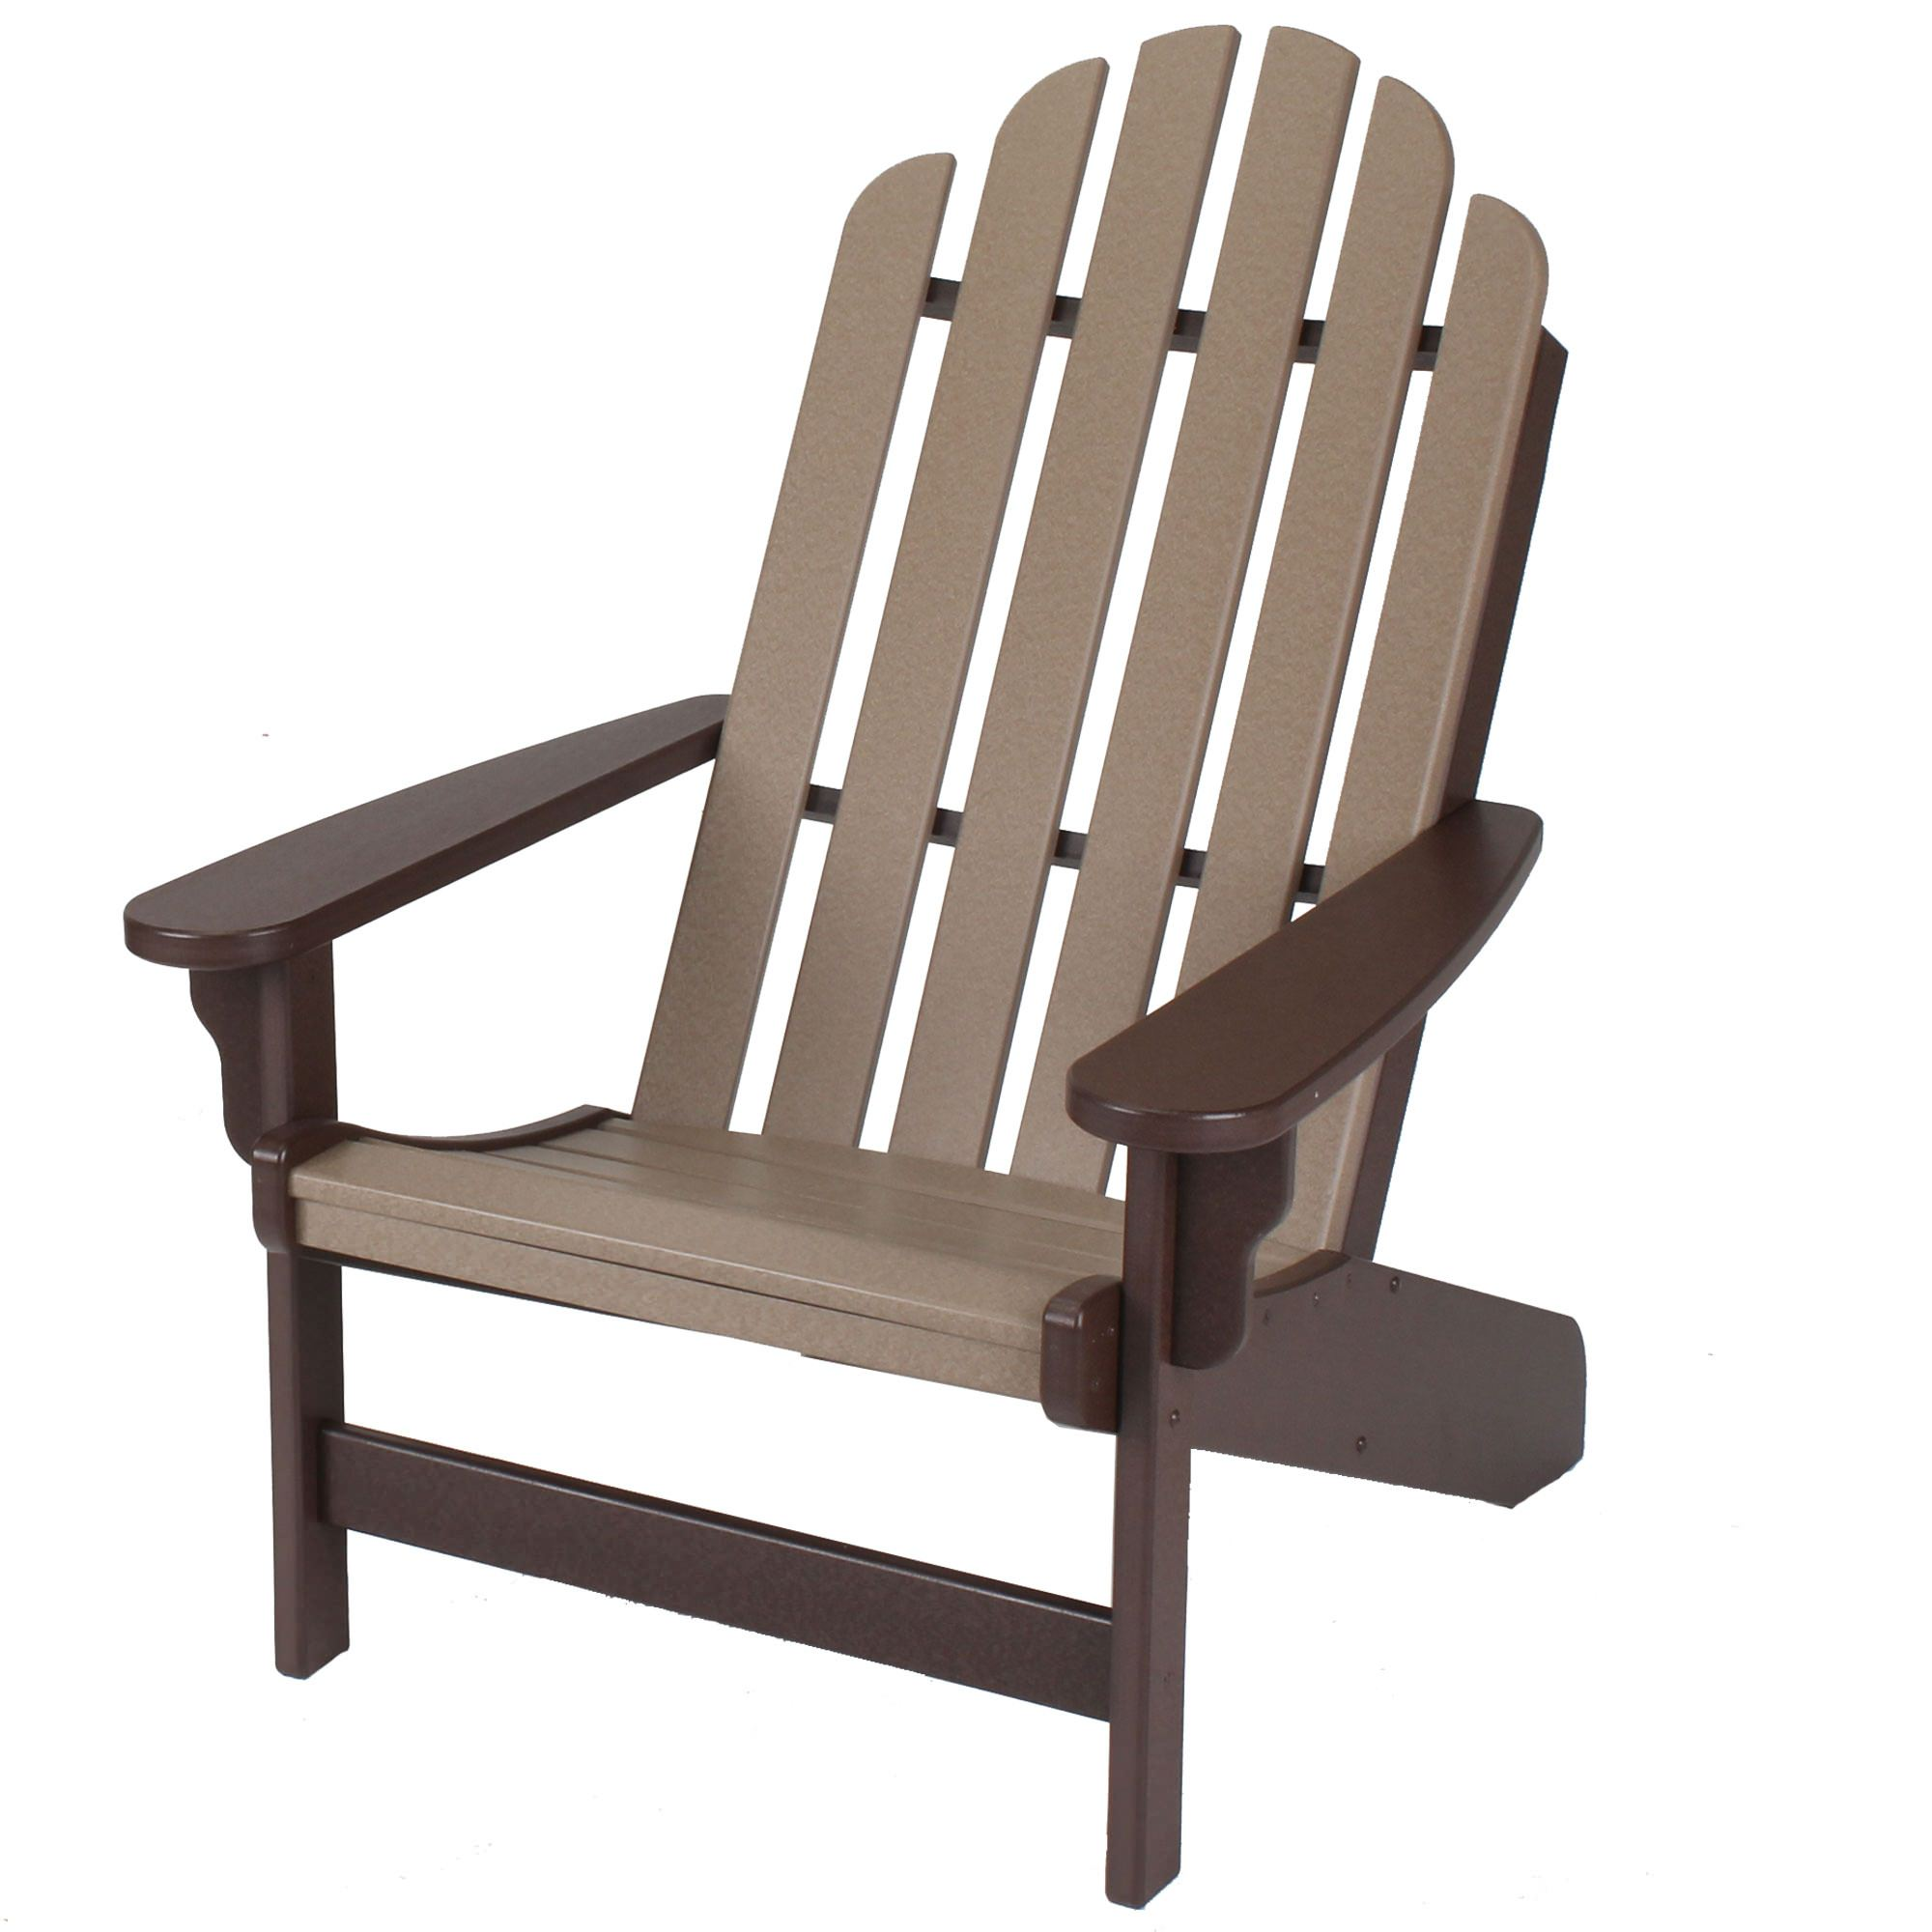 Lifetime Adirondack Chair Essentials Chocolate And Weatherwood Durawood Adirondack Chair